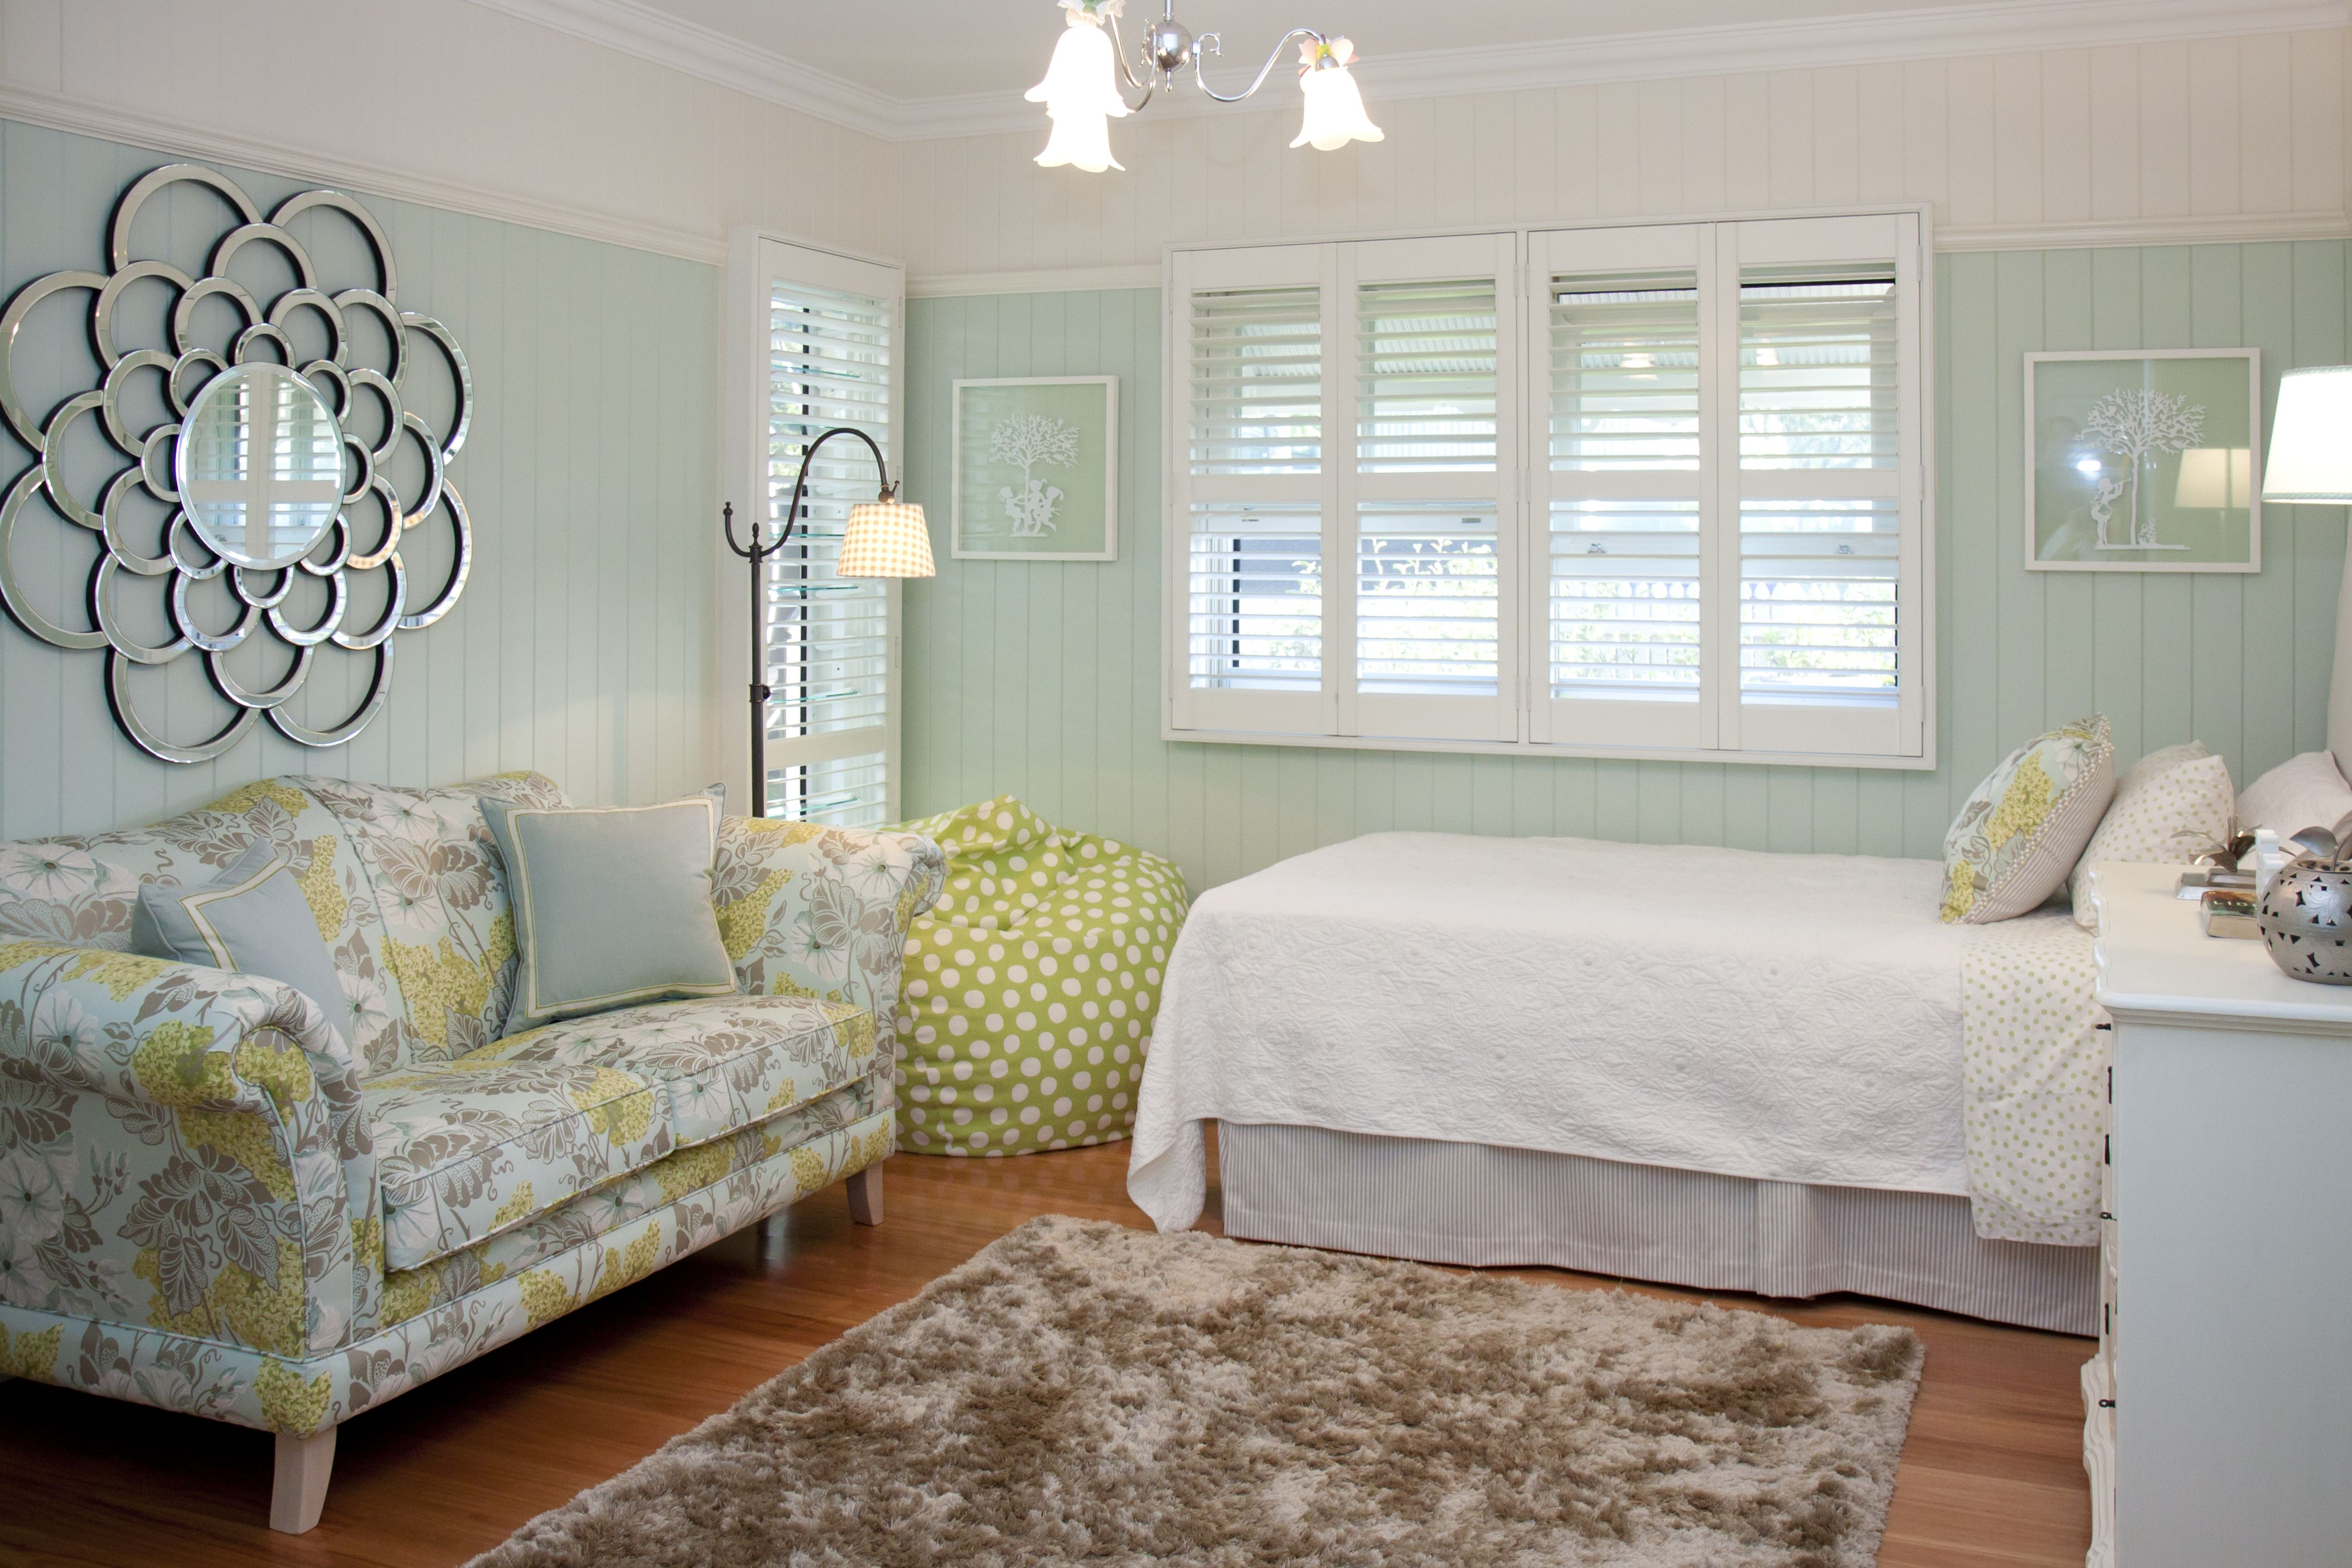 INTERIORS BY HIGHGATE HOUSE This gorgeous mint green bedroom is